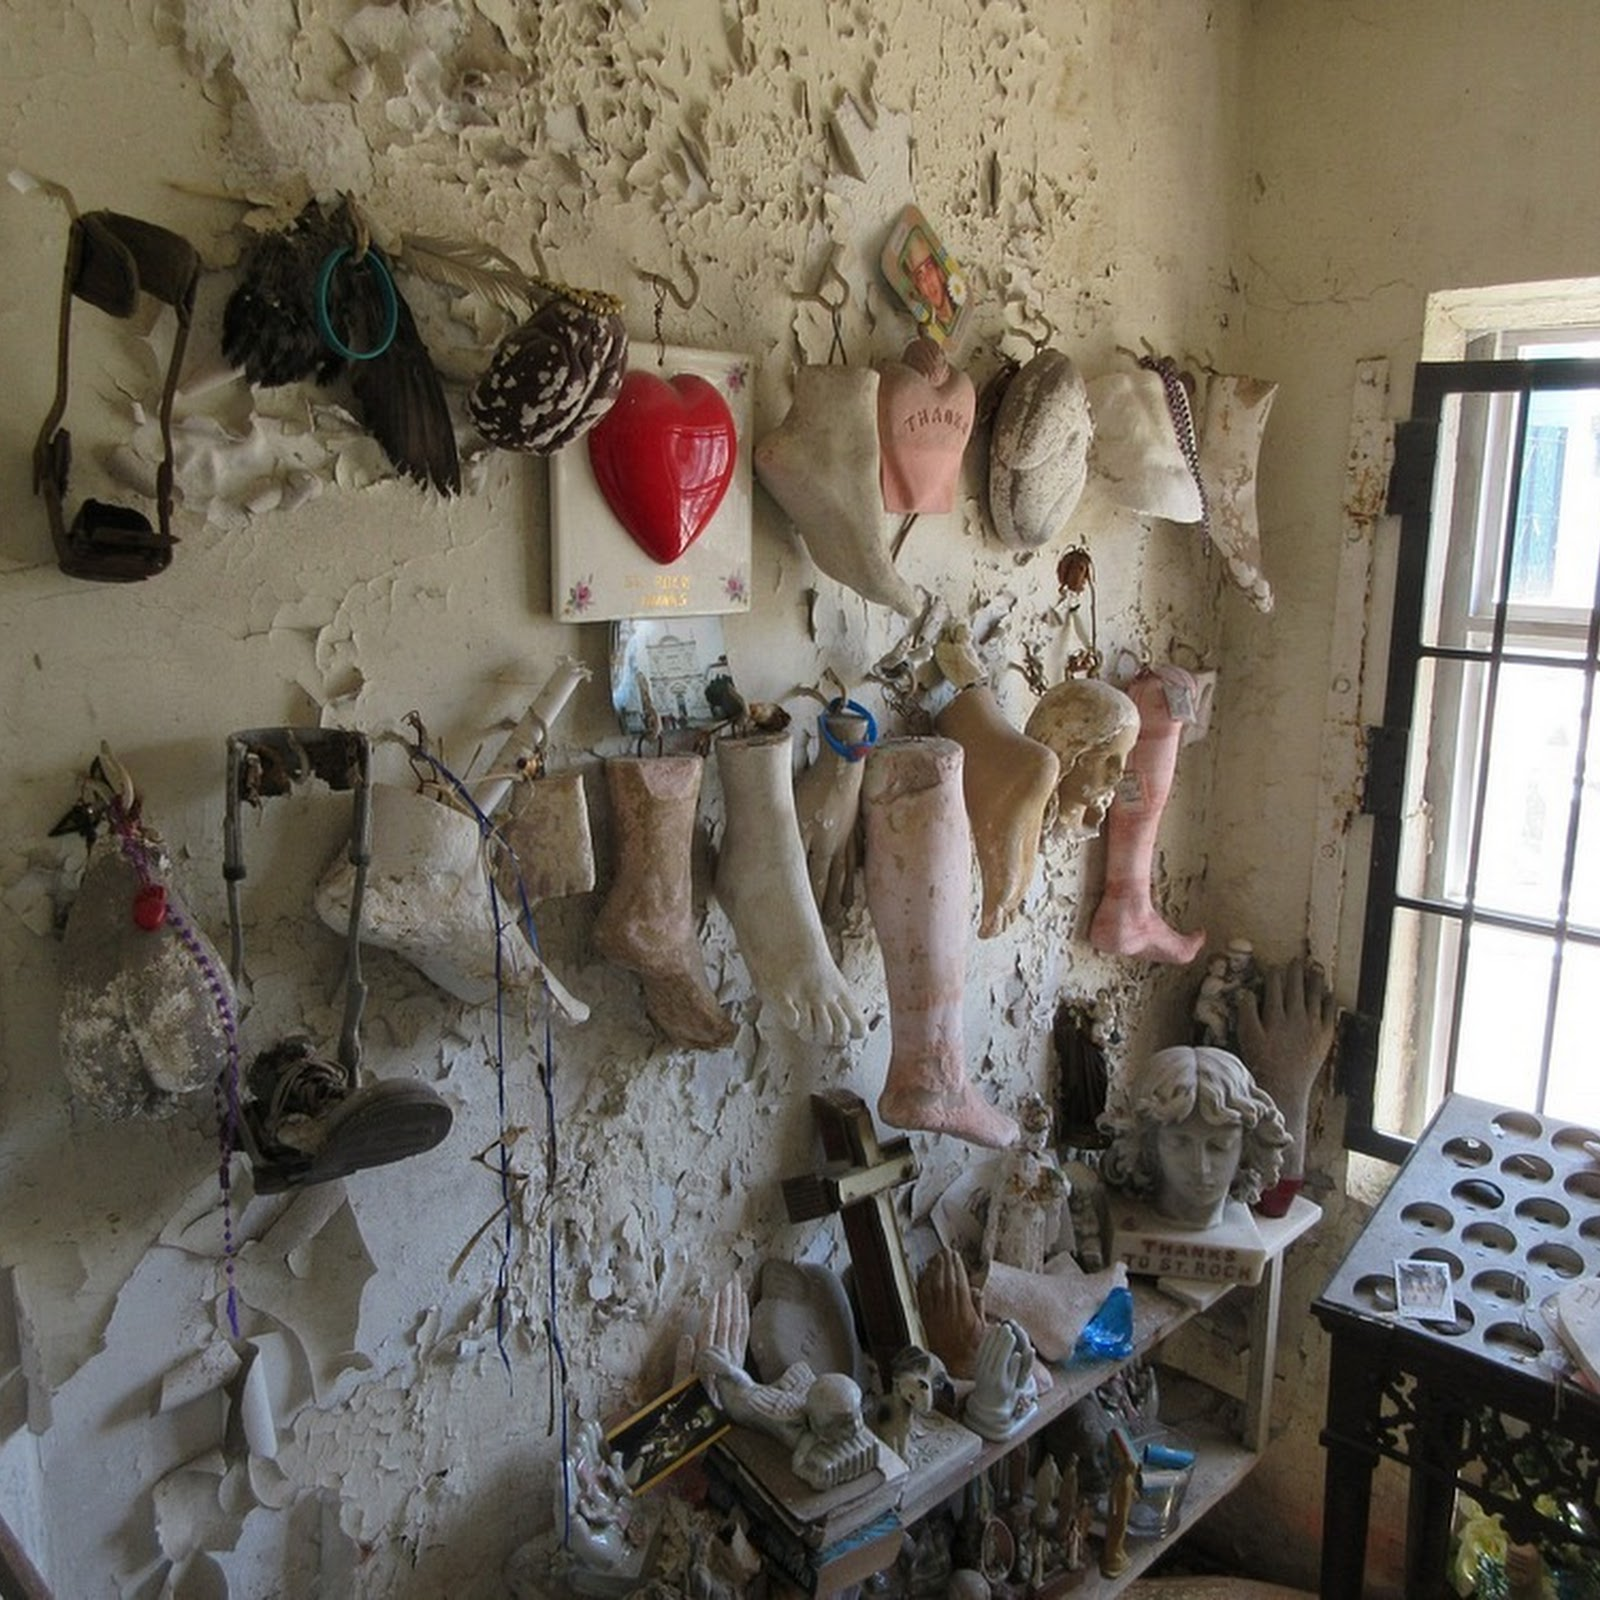 The Chapel of Prosthetics, New Orleans's St Roch Cemetery